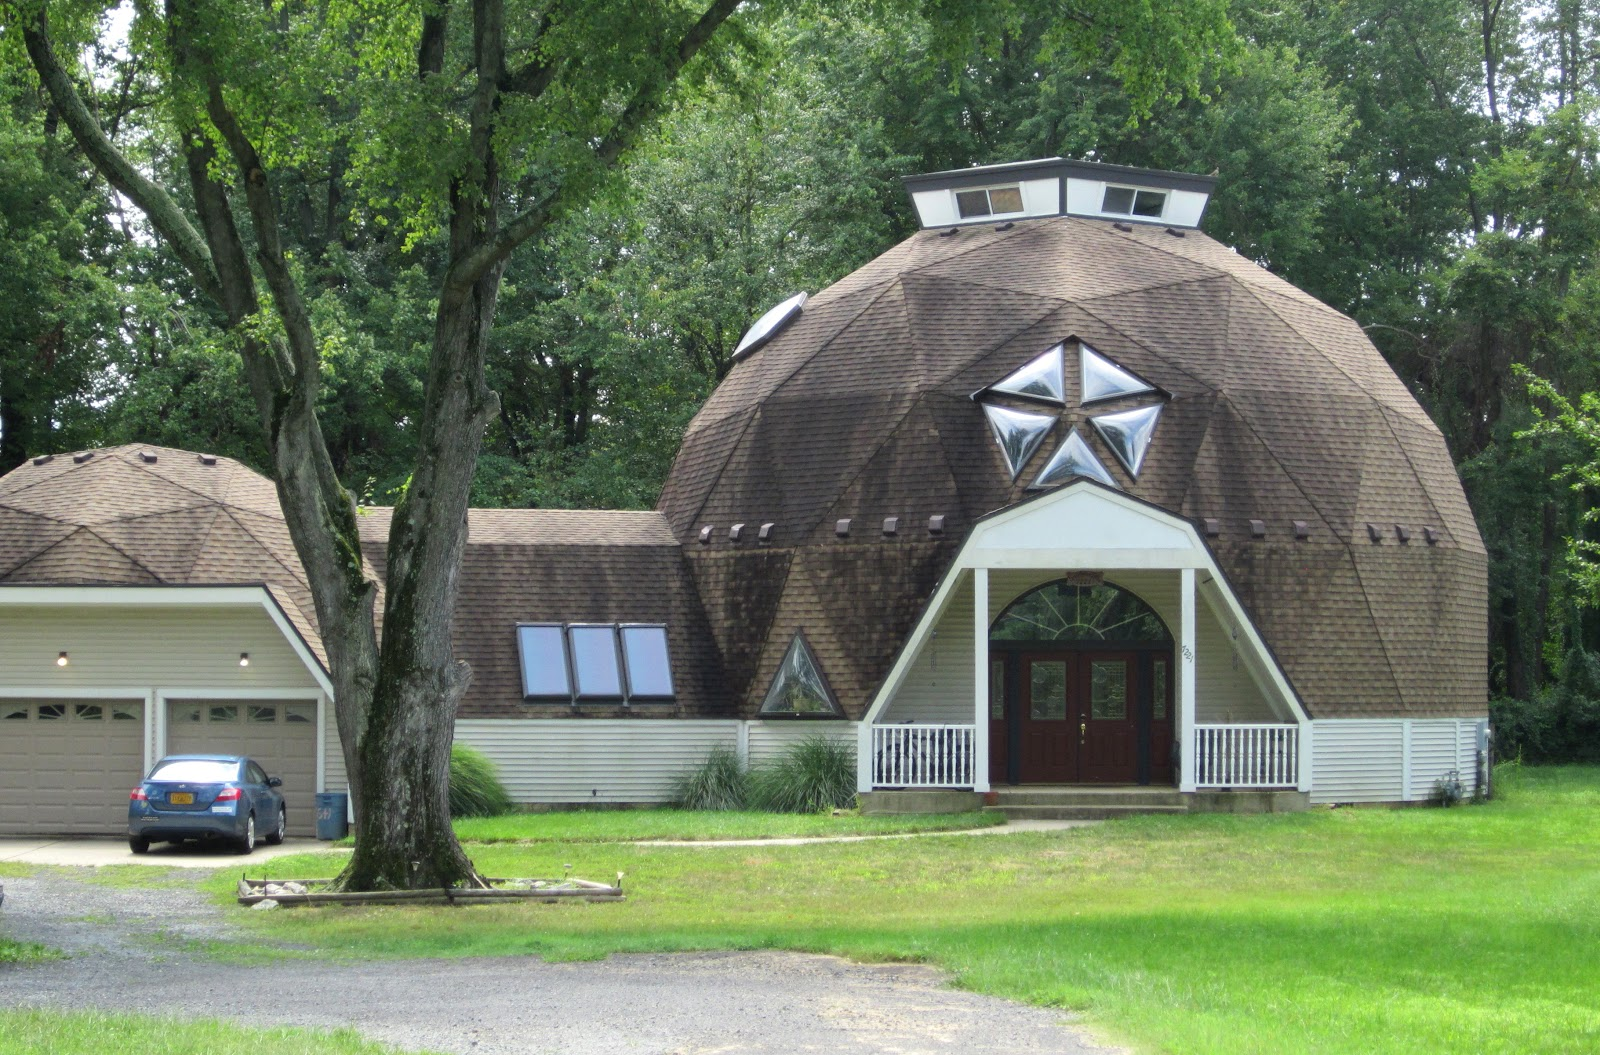 The Annandale Blog Wow Houses A Dome In Annandale Acres